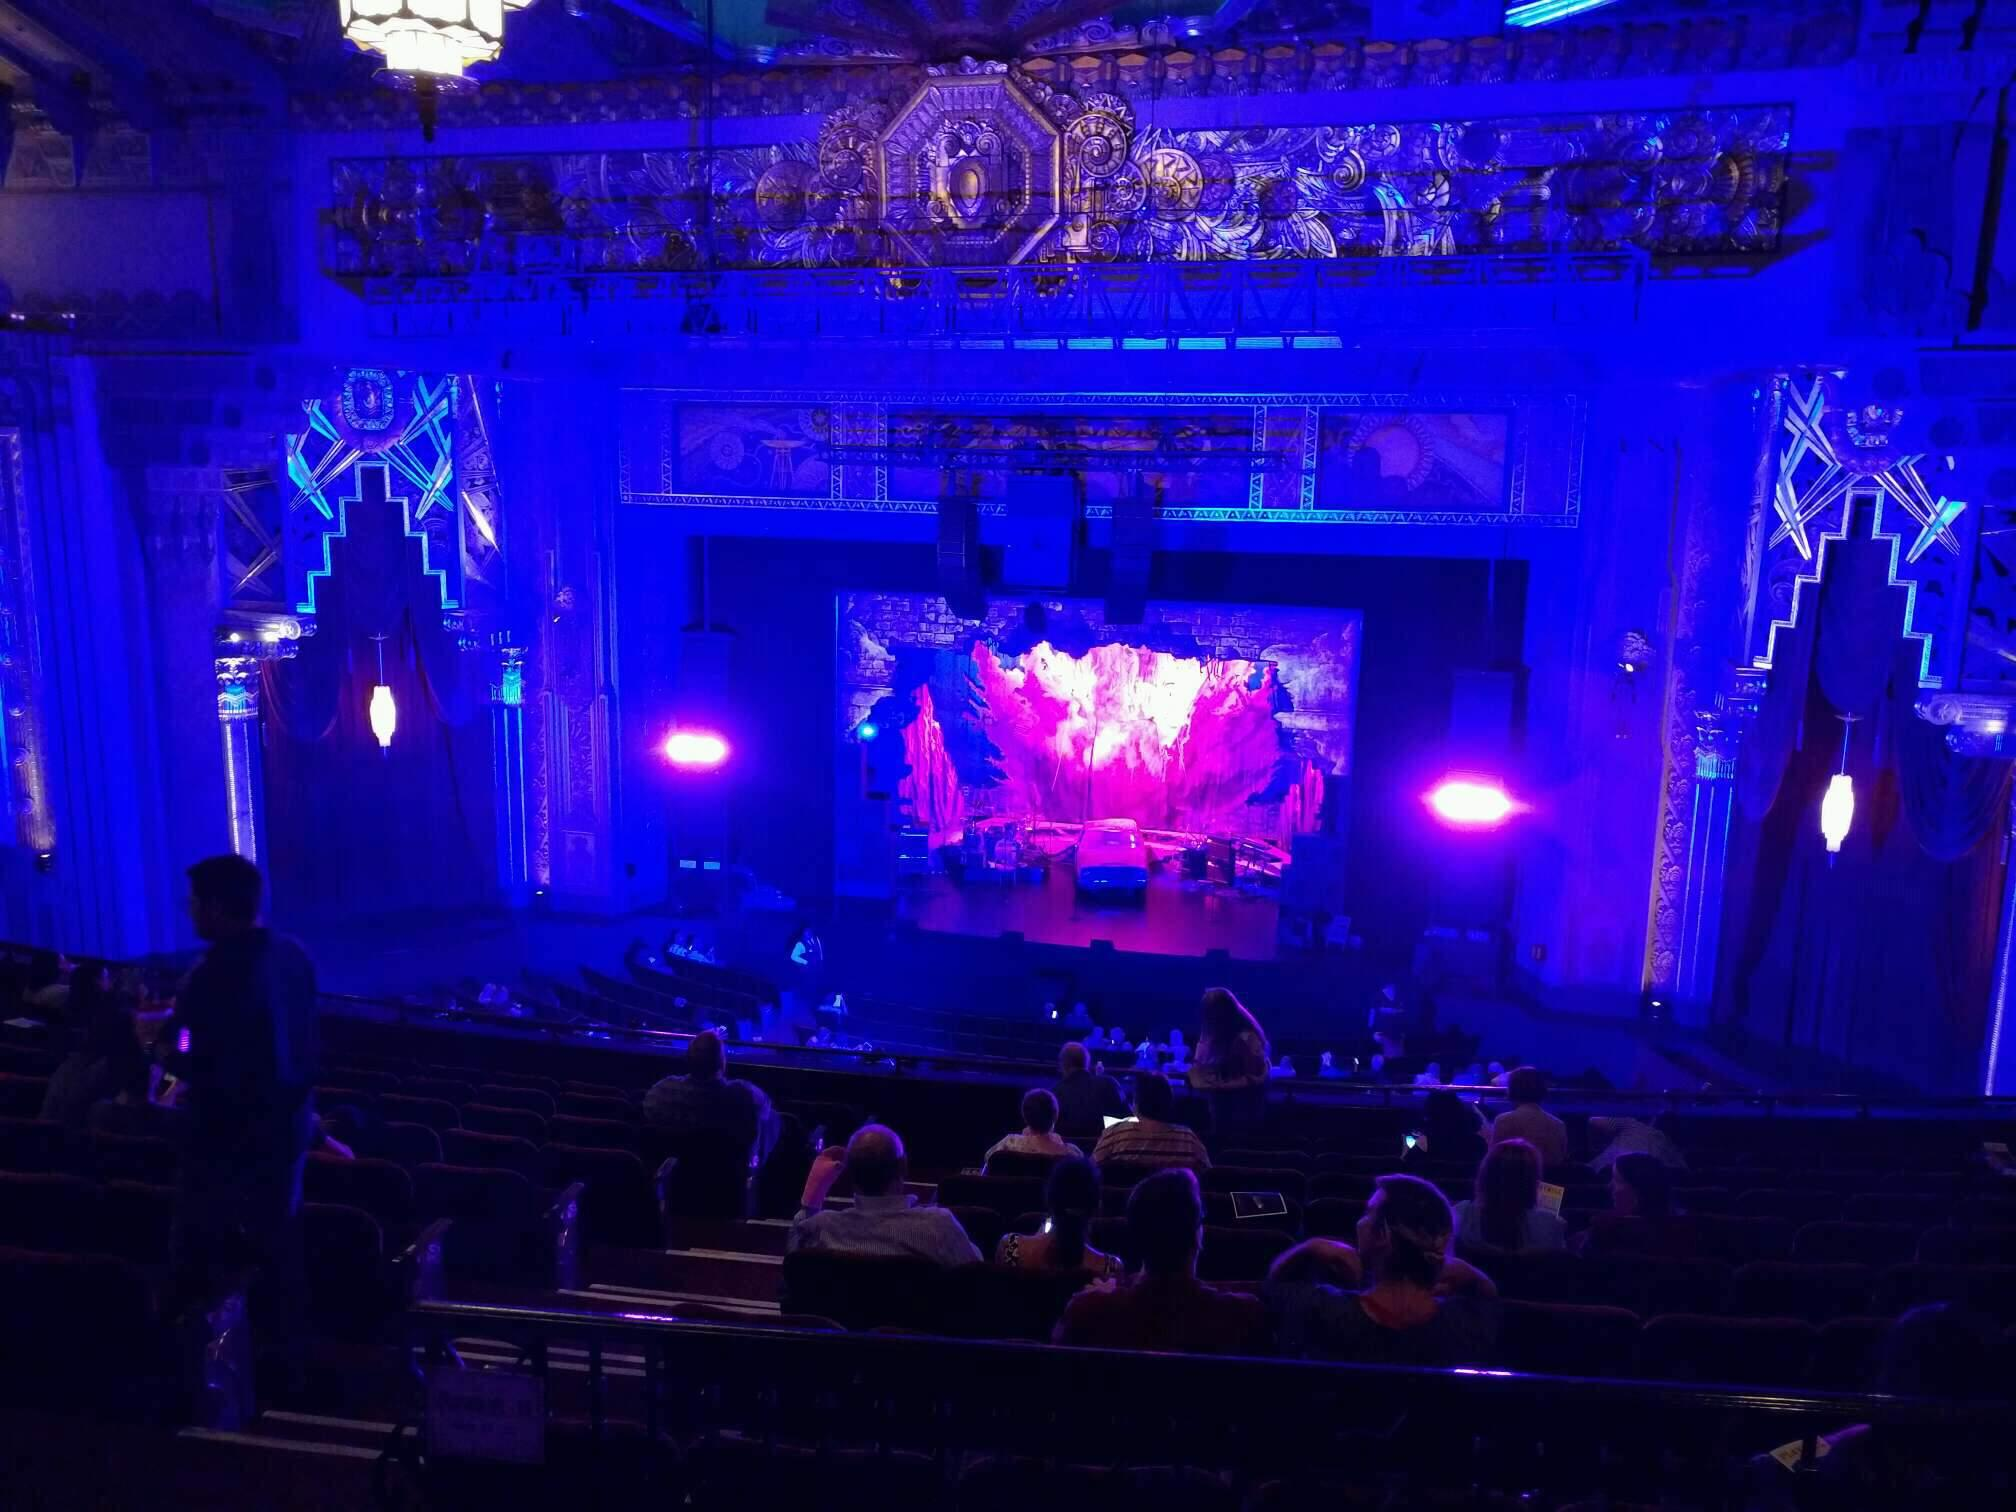 Hollywood Pantages Theatre Section Mezzanine RC Row k Seat 205